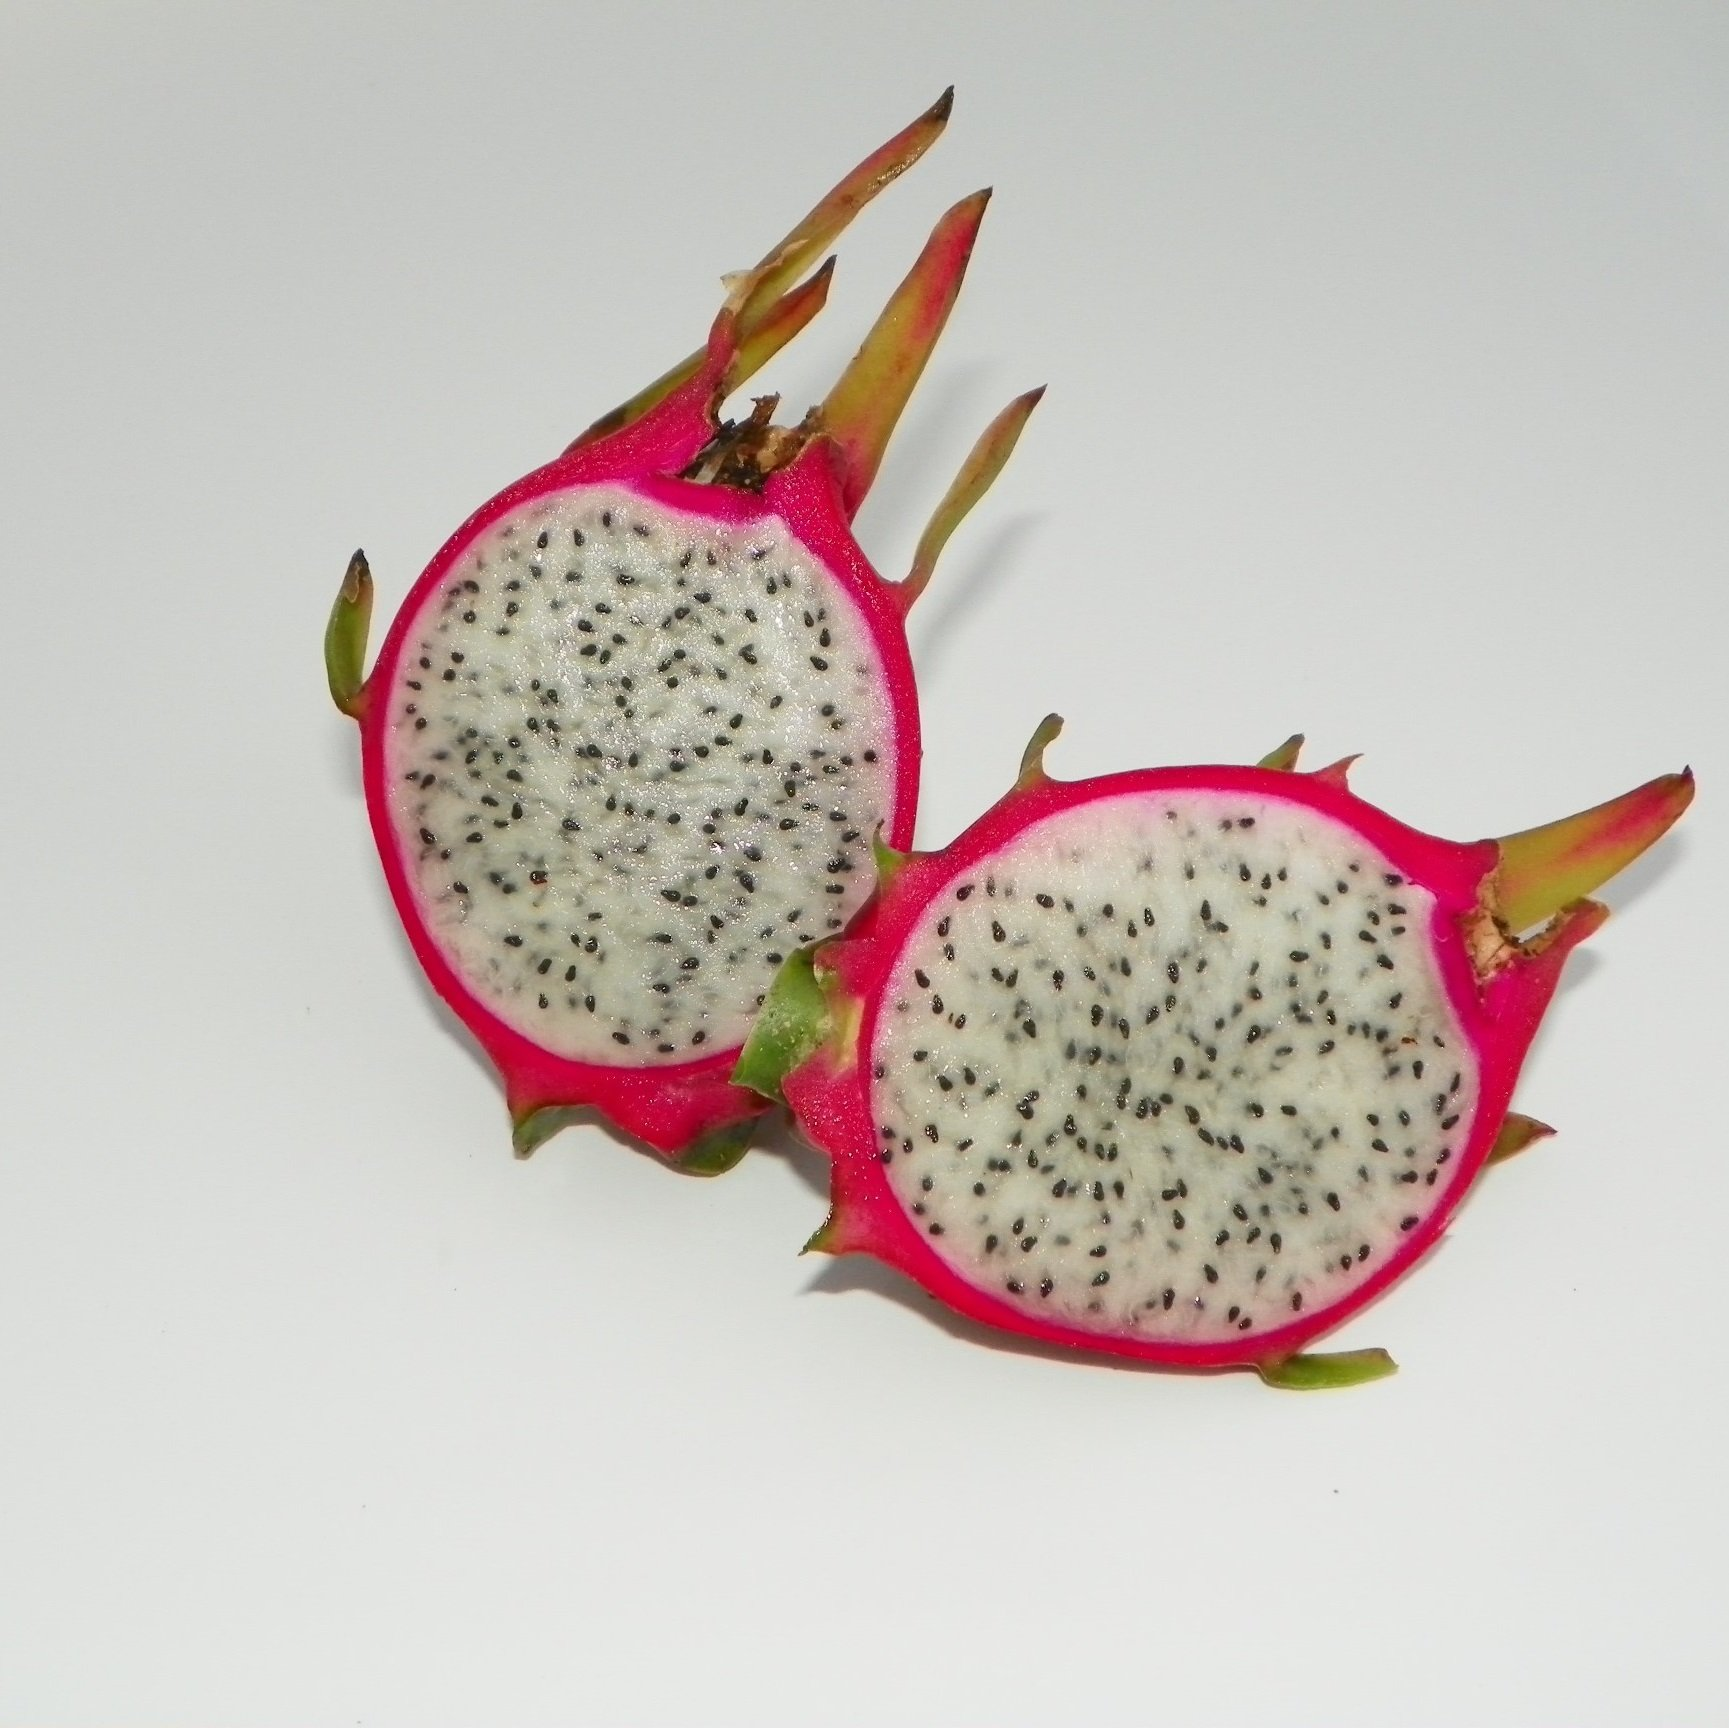 Dragon Fruit variety Hana fruit sliced